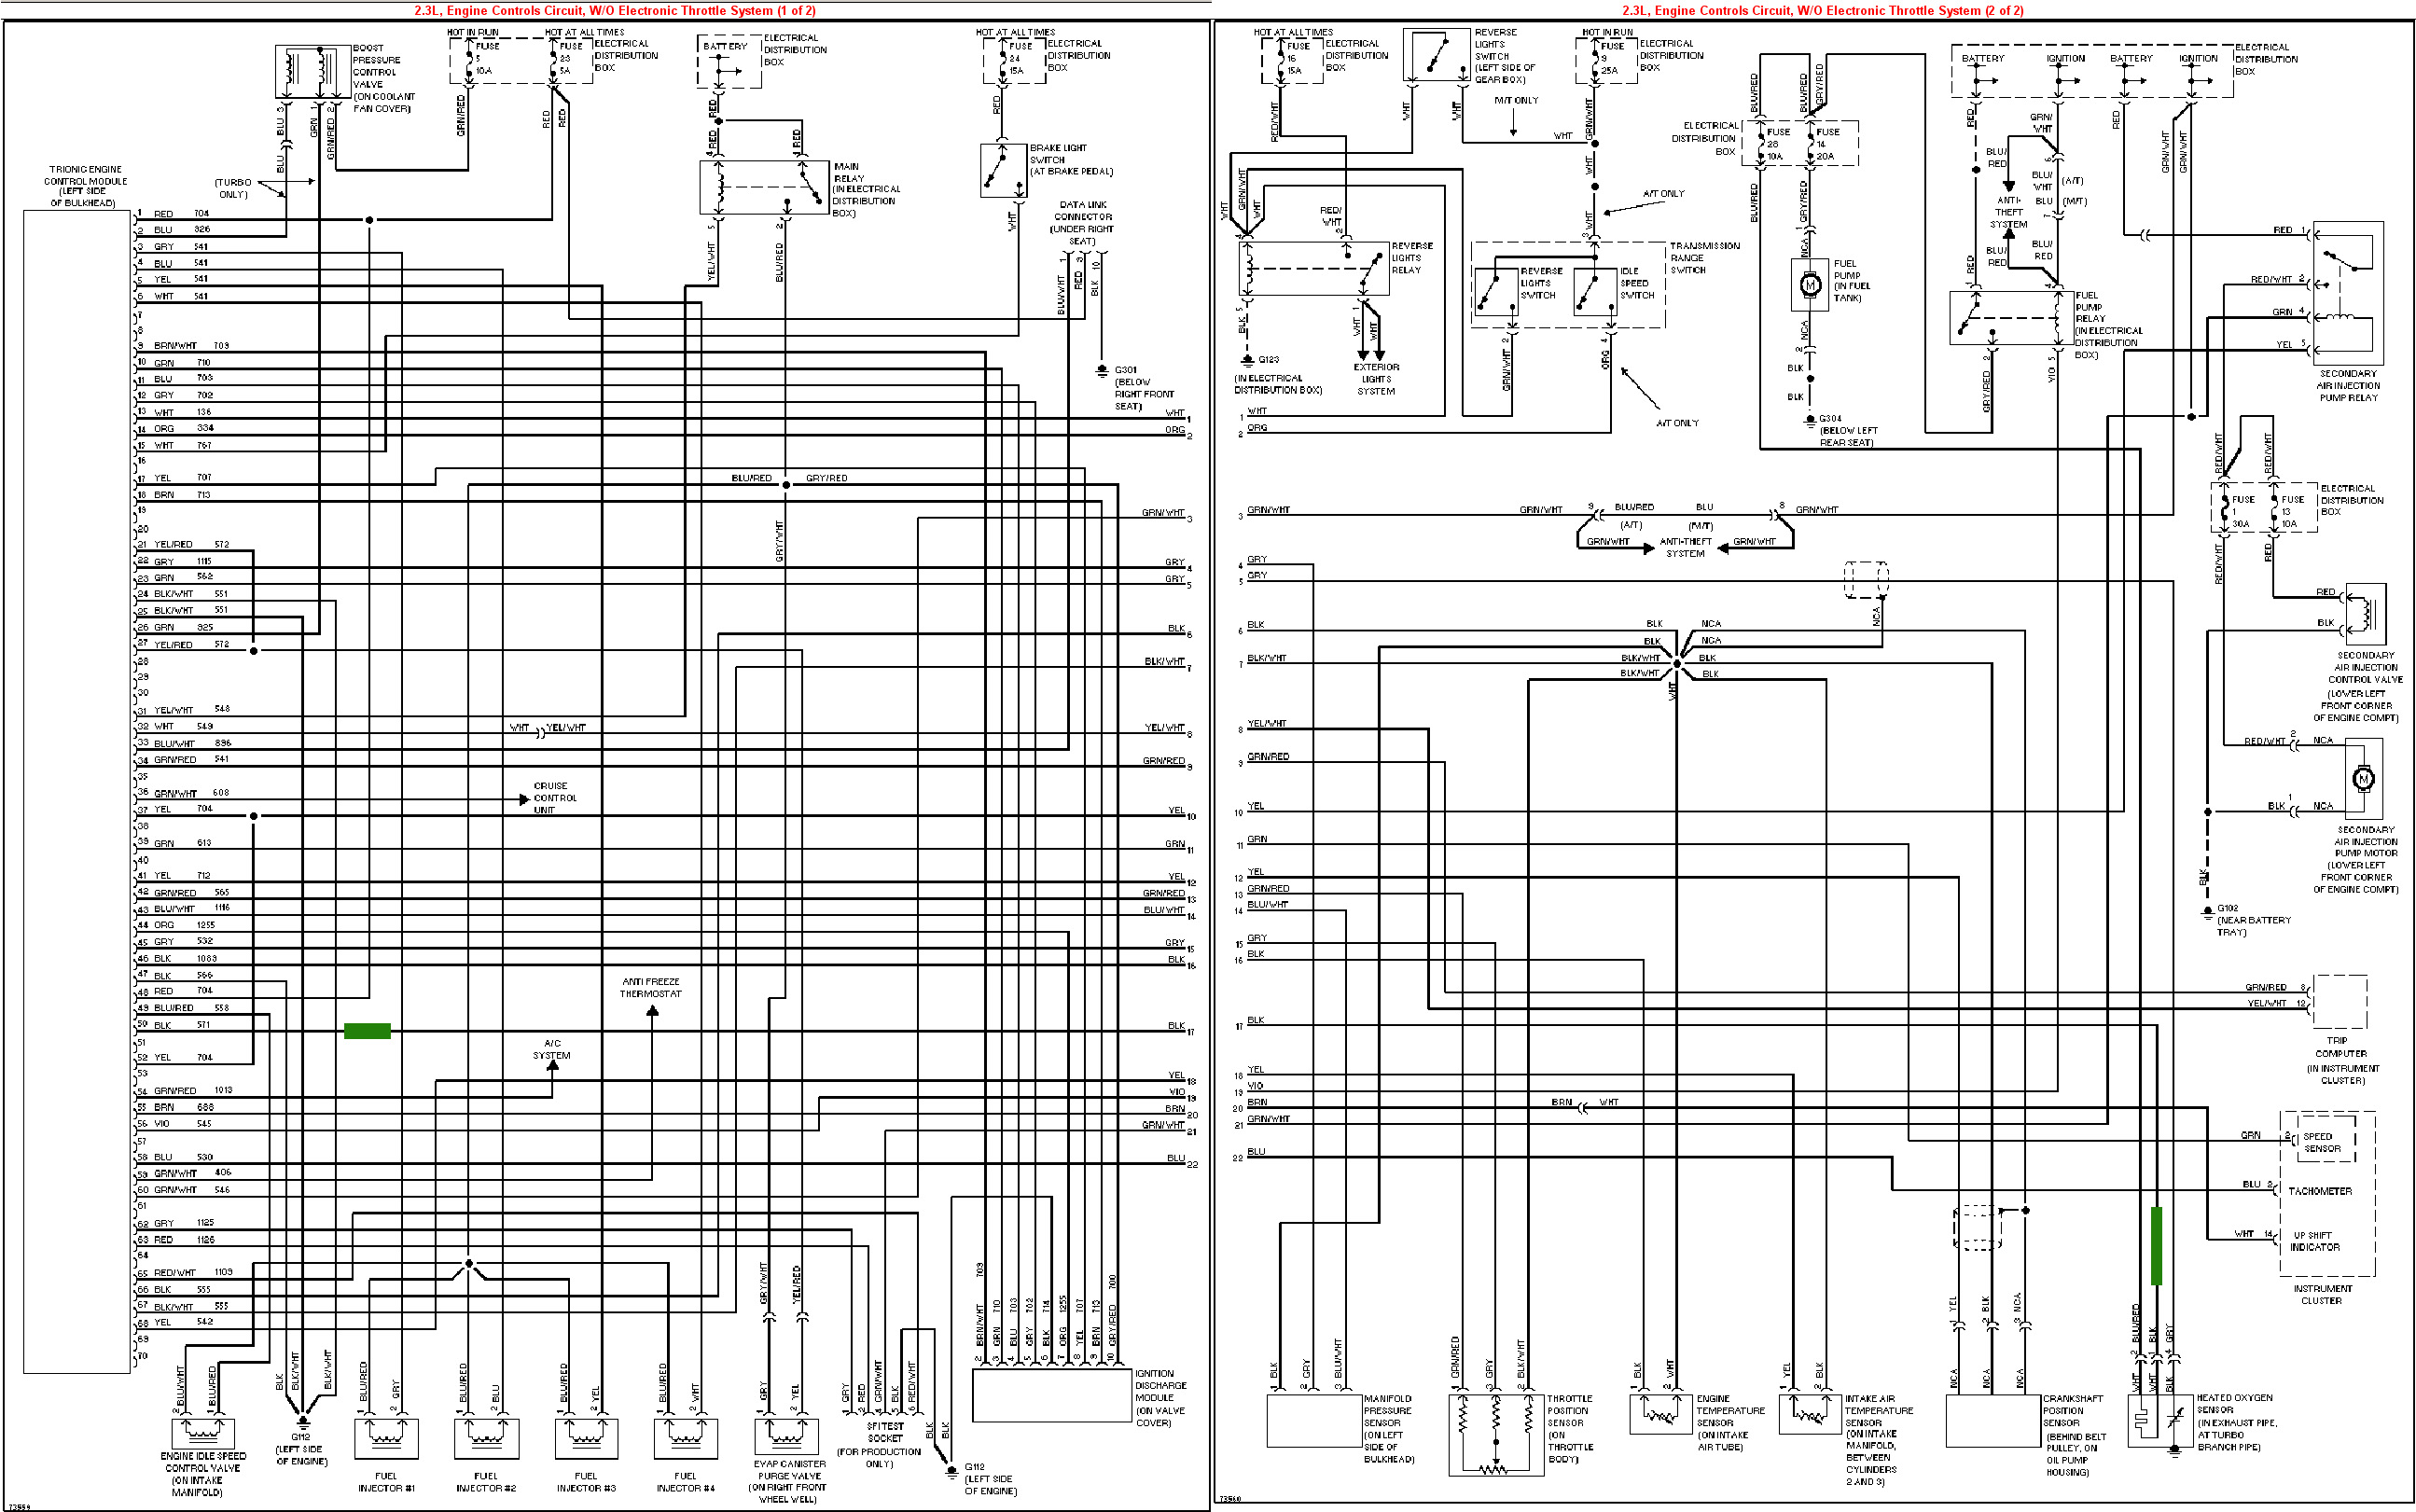 saab 9 5 wiring diagram wiring diagram 2004 Saab 9 5 Wiring Diagram saab 9 5 wiring diagram wiring diagram